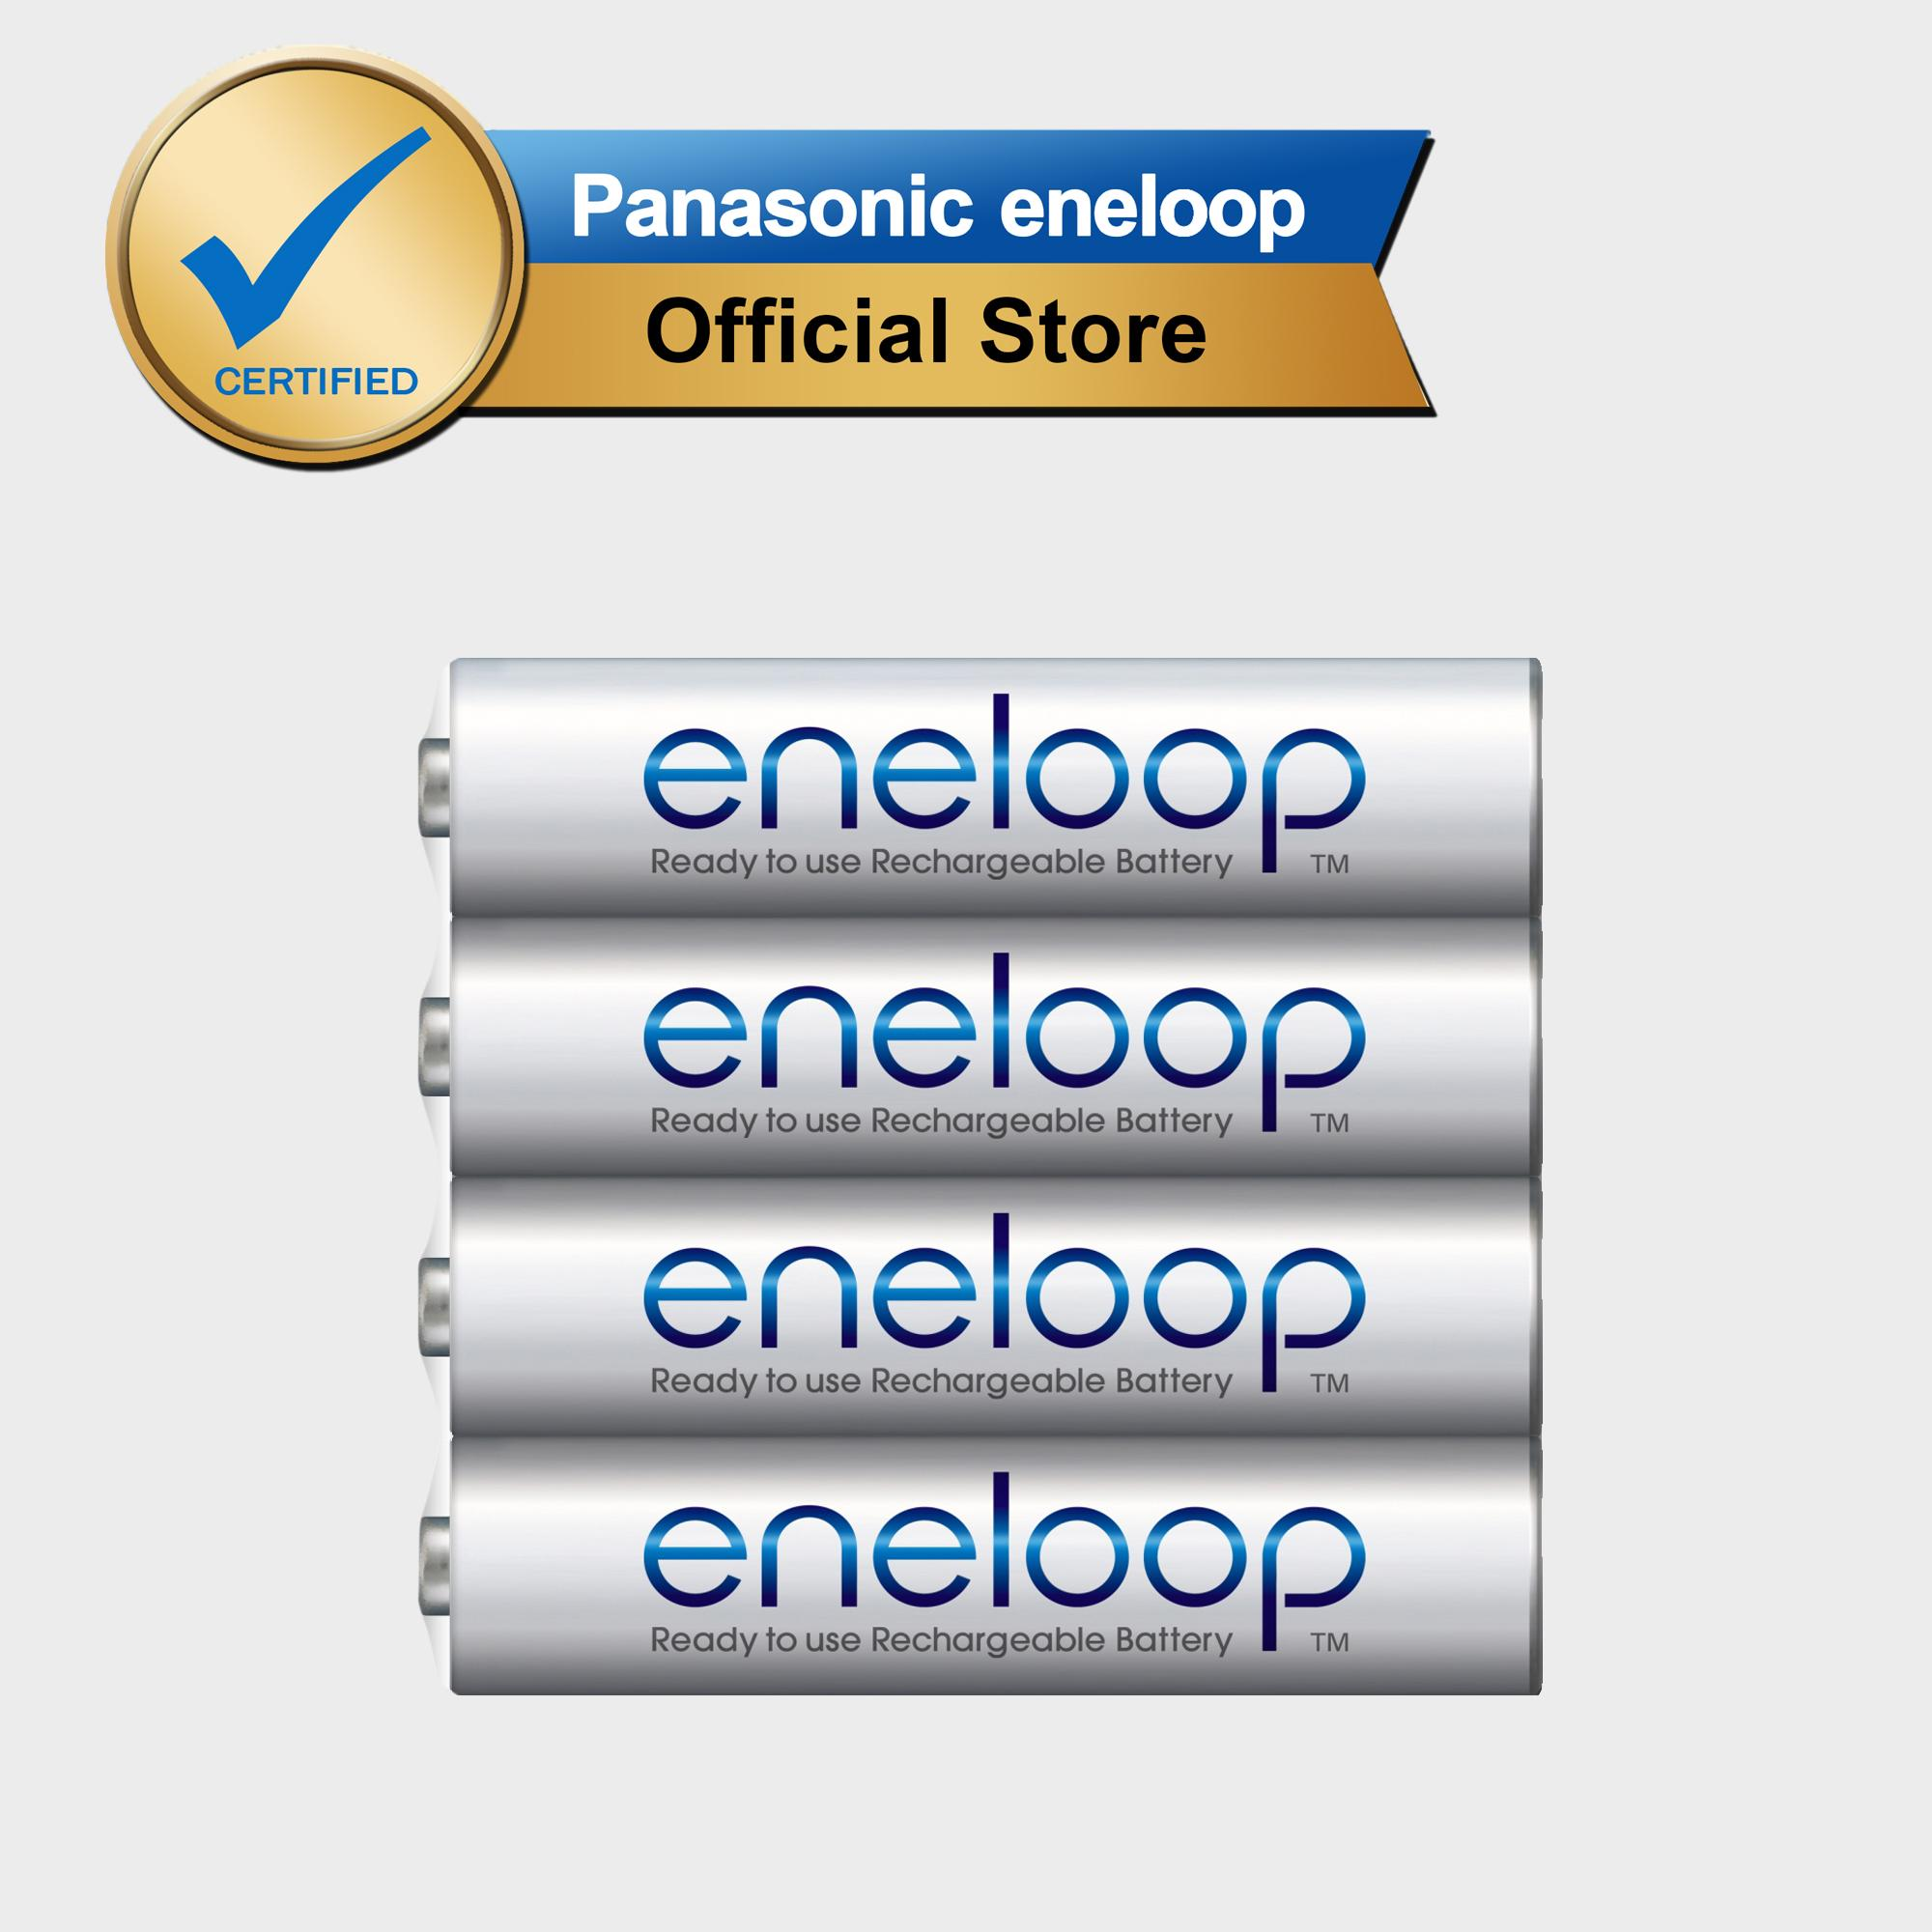 Camera Battery For Sale Digital Prices Brands Sanyo Eneloop Aaa 2pcs Panasonic Shrink Pack Rechargeable Of 4 Bk 4mcce 4st